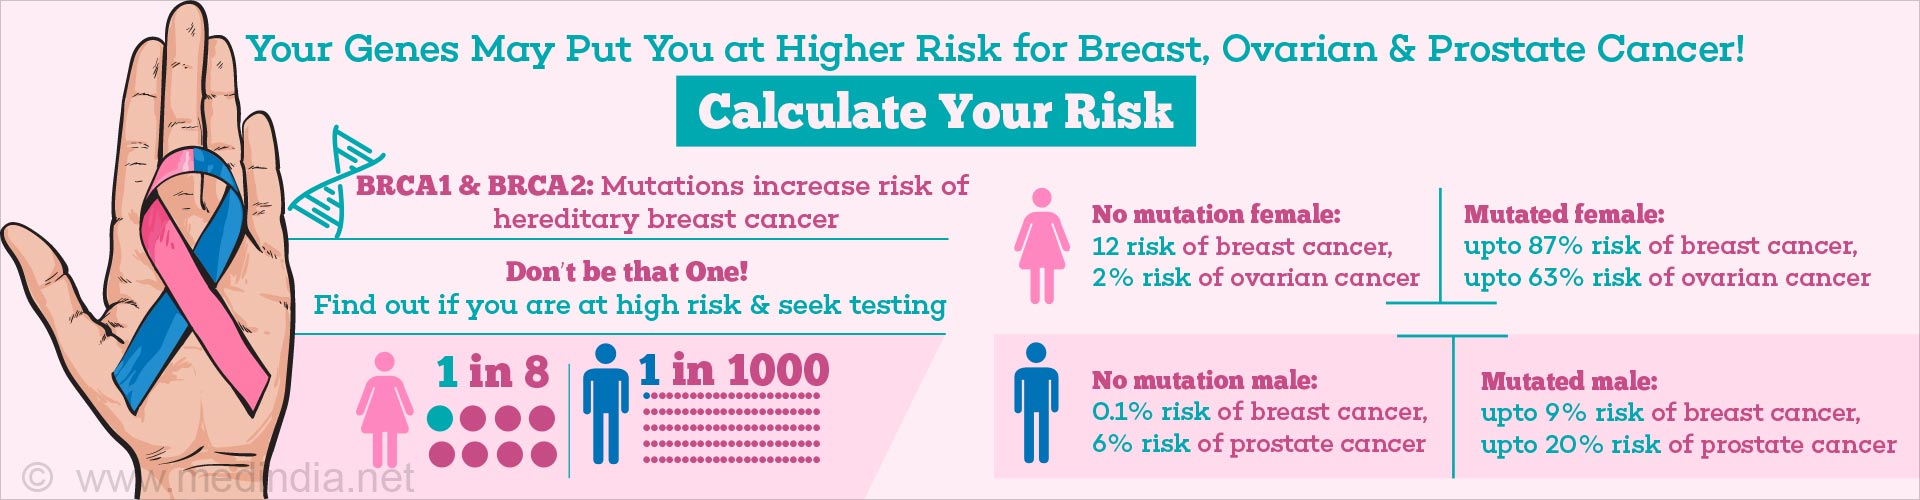 Hereditary Breast, Ovarian and Prostate Cancer Risk Calculator